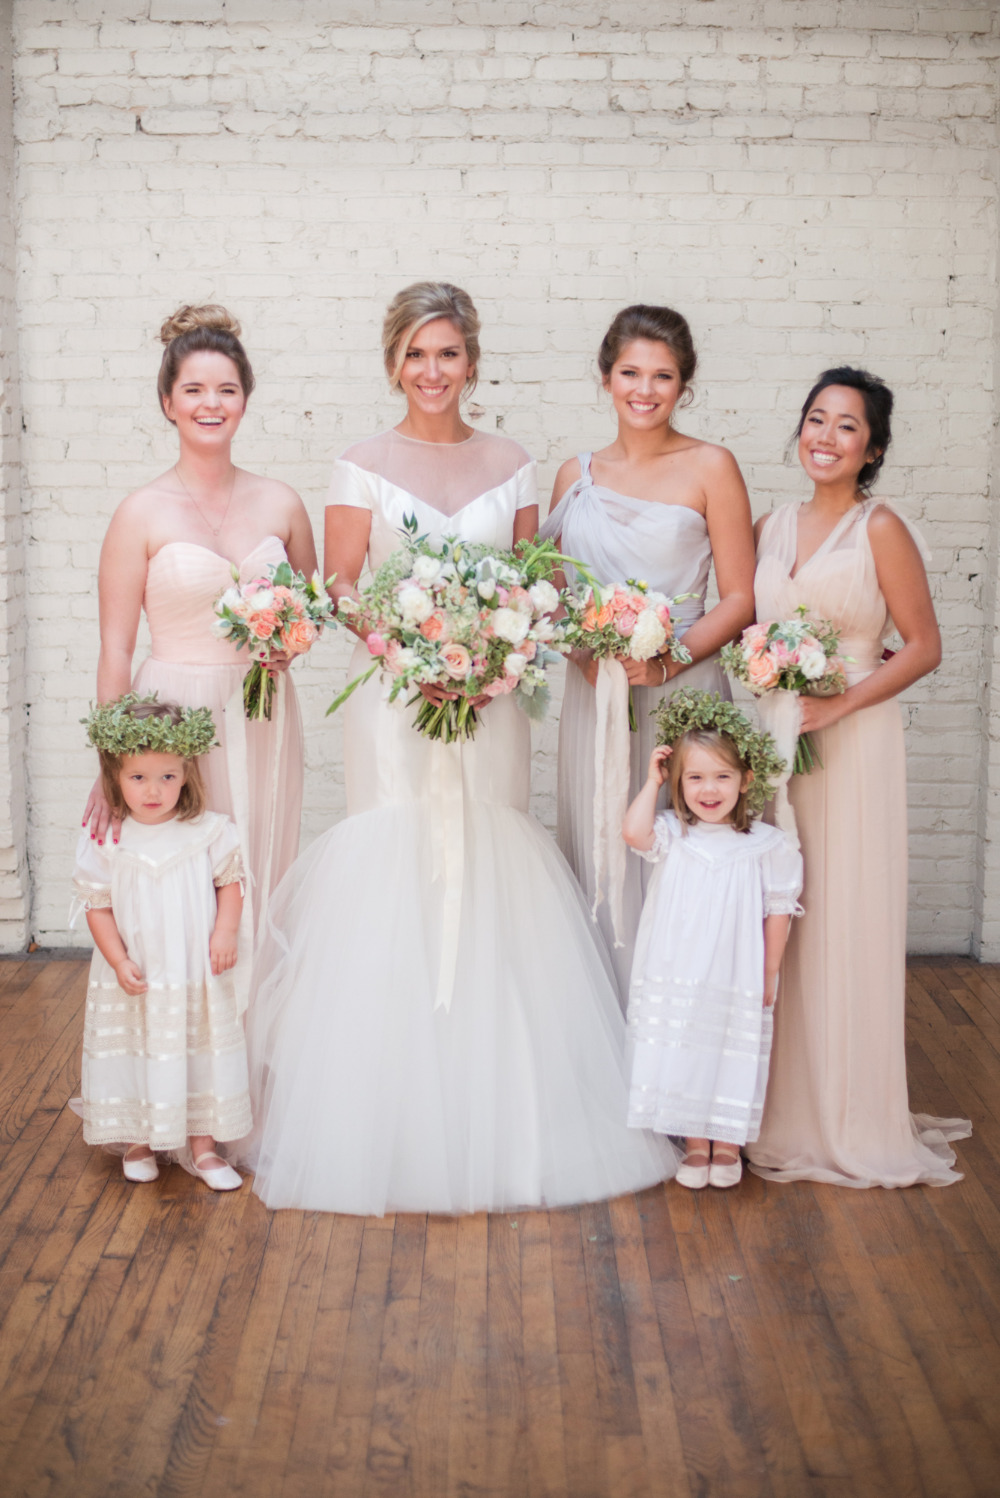 white and peach bridesmaids dress with flower girls